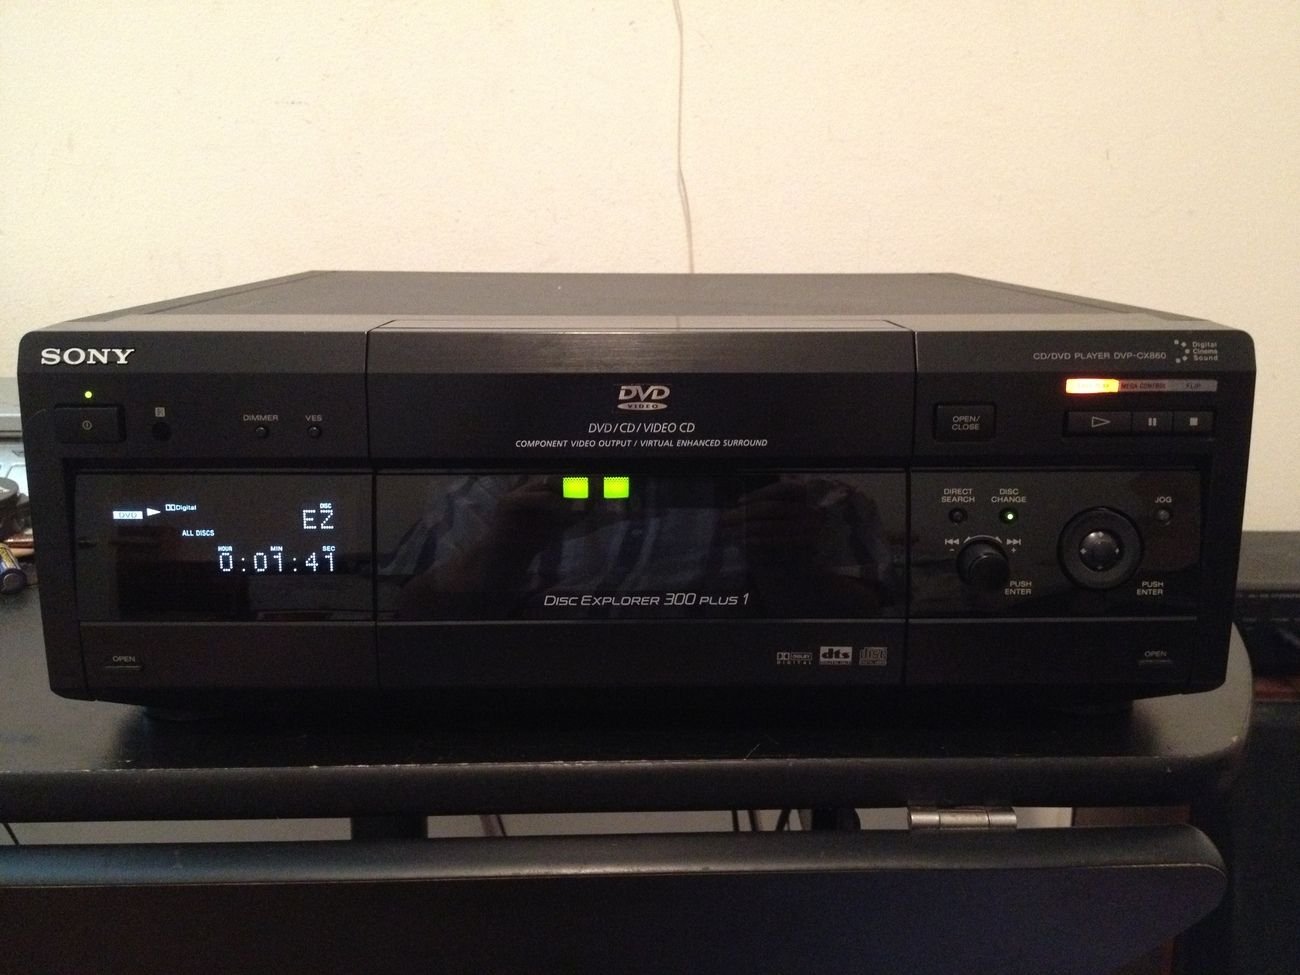 sony dvp cx860 300 1 dvd cd changer player pinterest sony rh pinterest com sony 300 cd player manual download sony mega storage 300 cd player manual